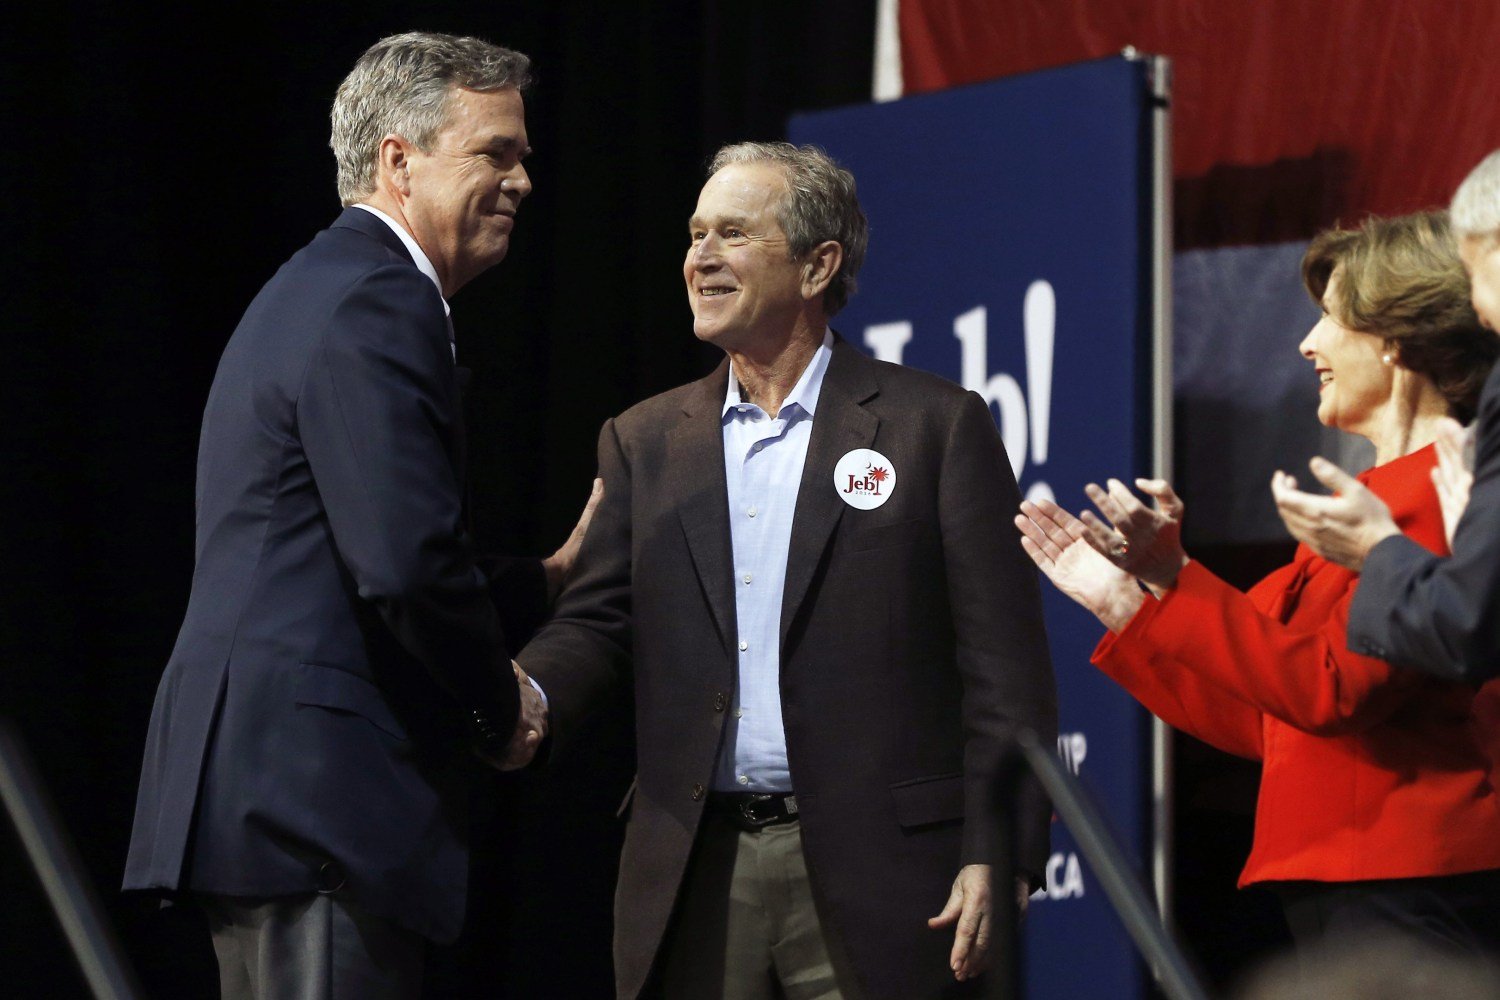 George W. Bush Explains 'What It Takes' to Be President While Stumping for Jeb